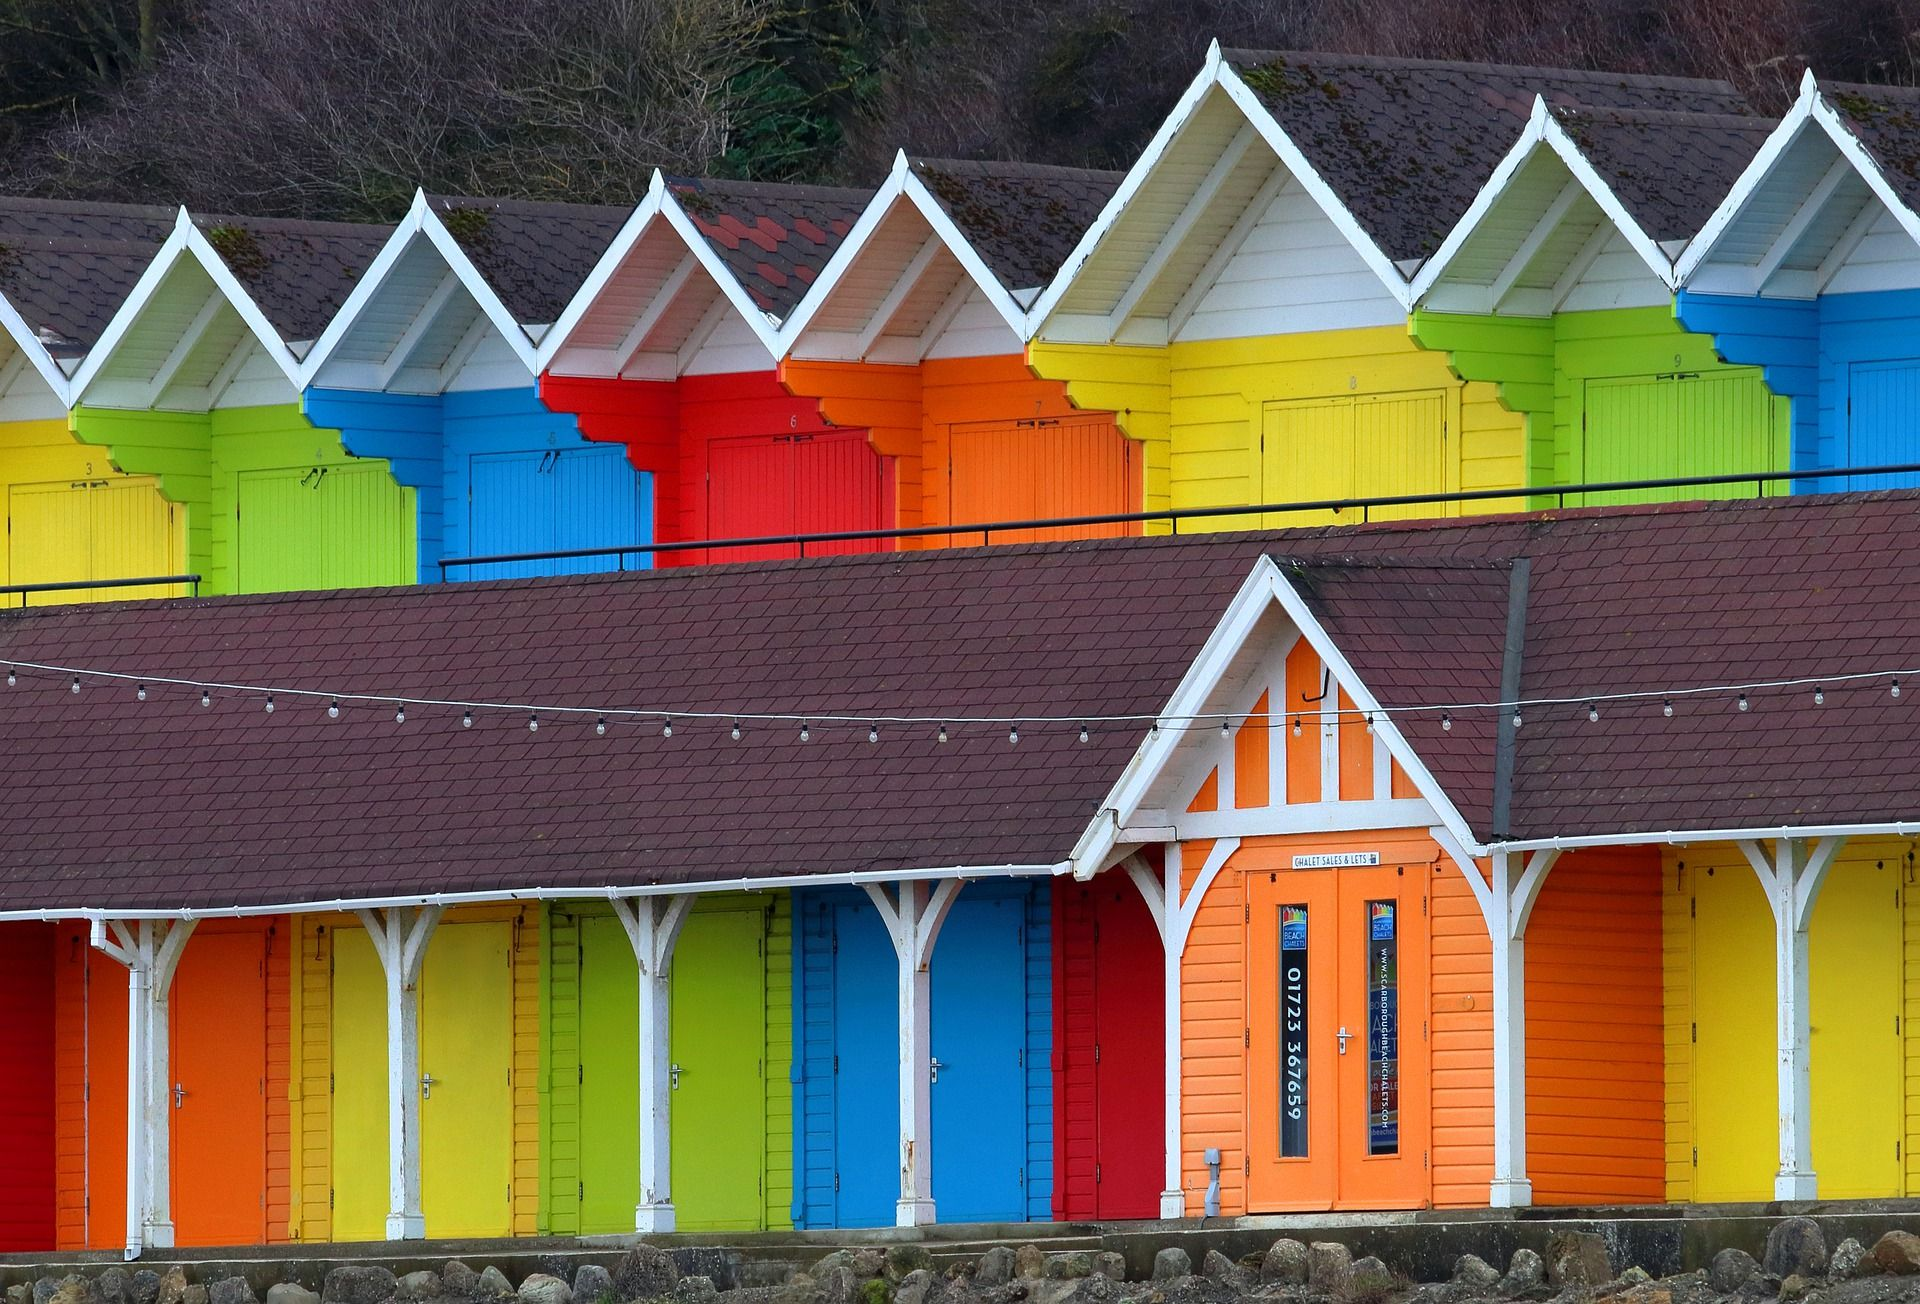 colourful-rainbow-beach-huts-in-british-seaside-resort-scarborough-england-uk